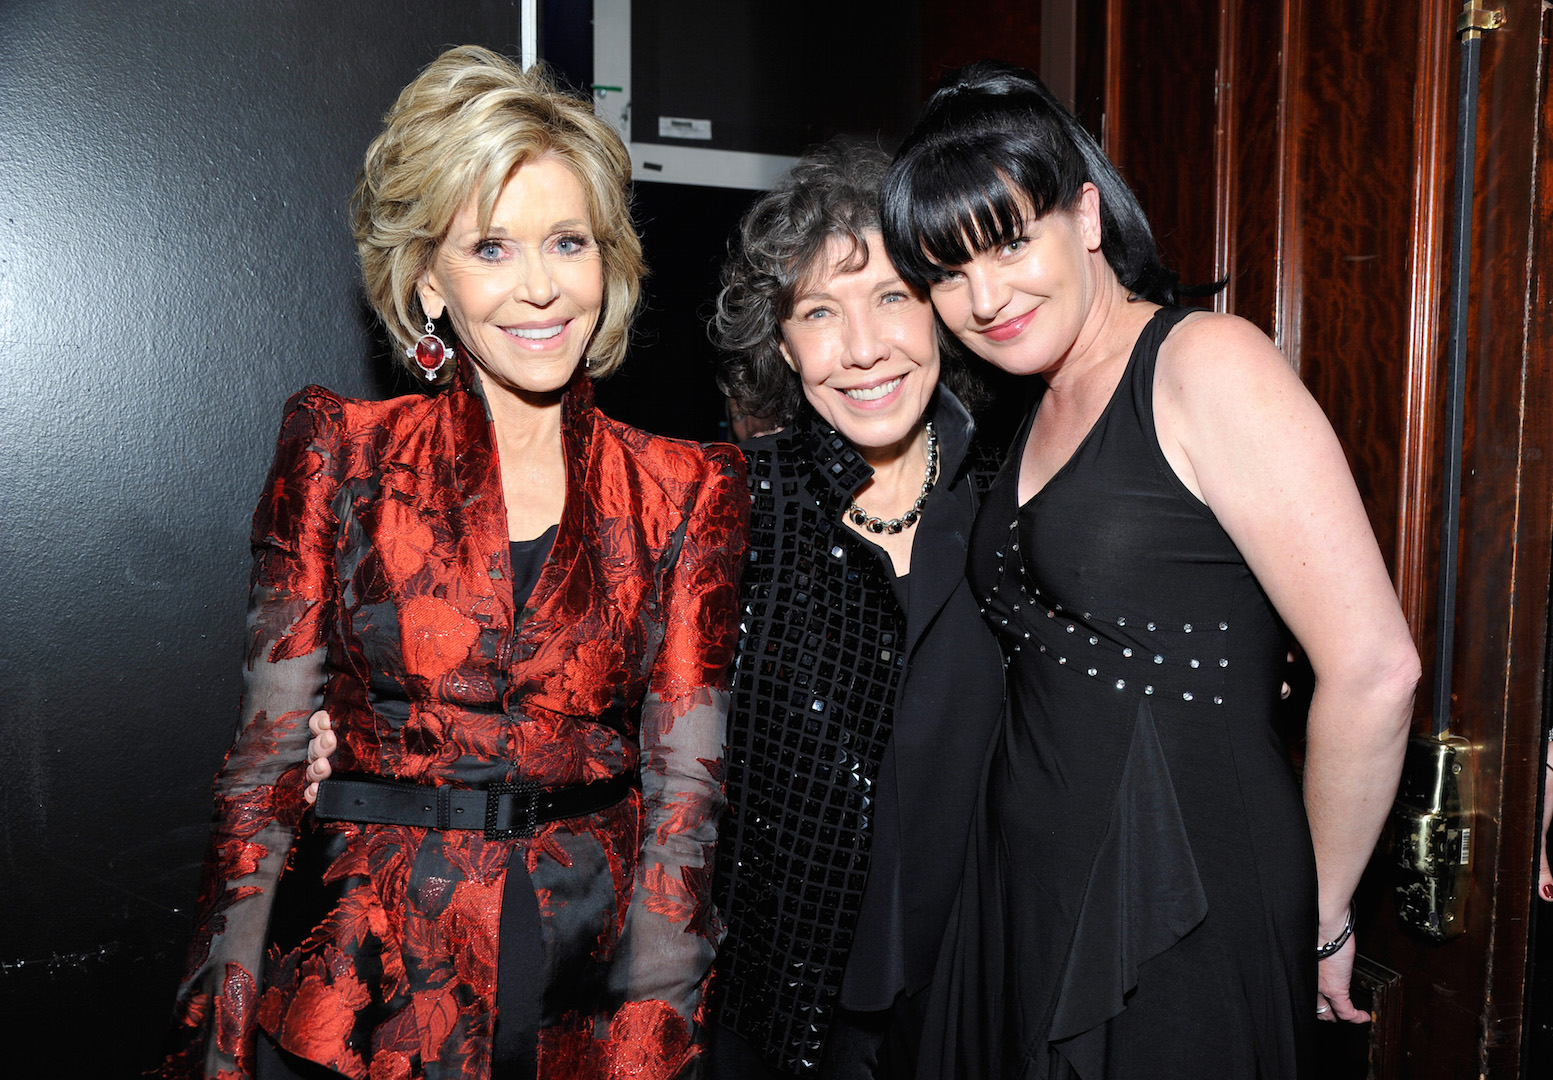 CENTURY CITY, CA - NOVEMBER 07:  (L-R) Honoree Jane Fonda, actresses Lily Tomlin and Pauley Perrette arrive at the Los Angeles LGBT Center 46th Anniversary Gala Vanguard Awards at the Hyatt Regency Century Plaza on November 7, 2015 in Century City, California.  (Photo by John Sciulli/Getty Images for Los Angeles LGBT Center)